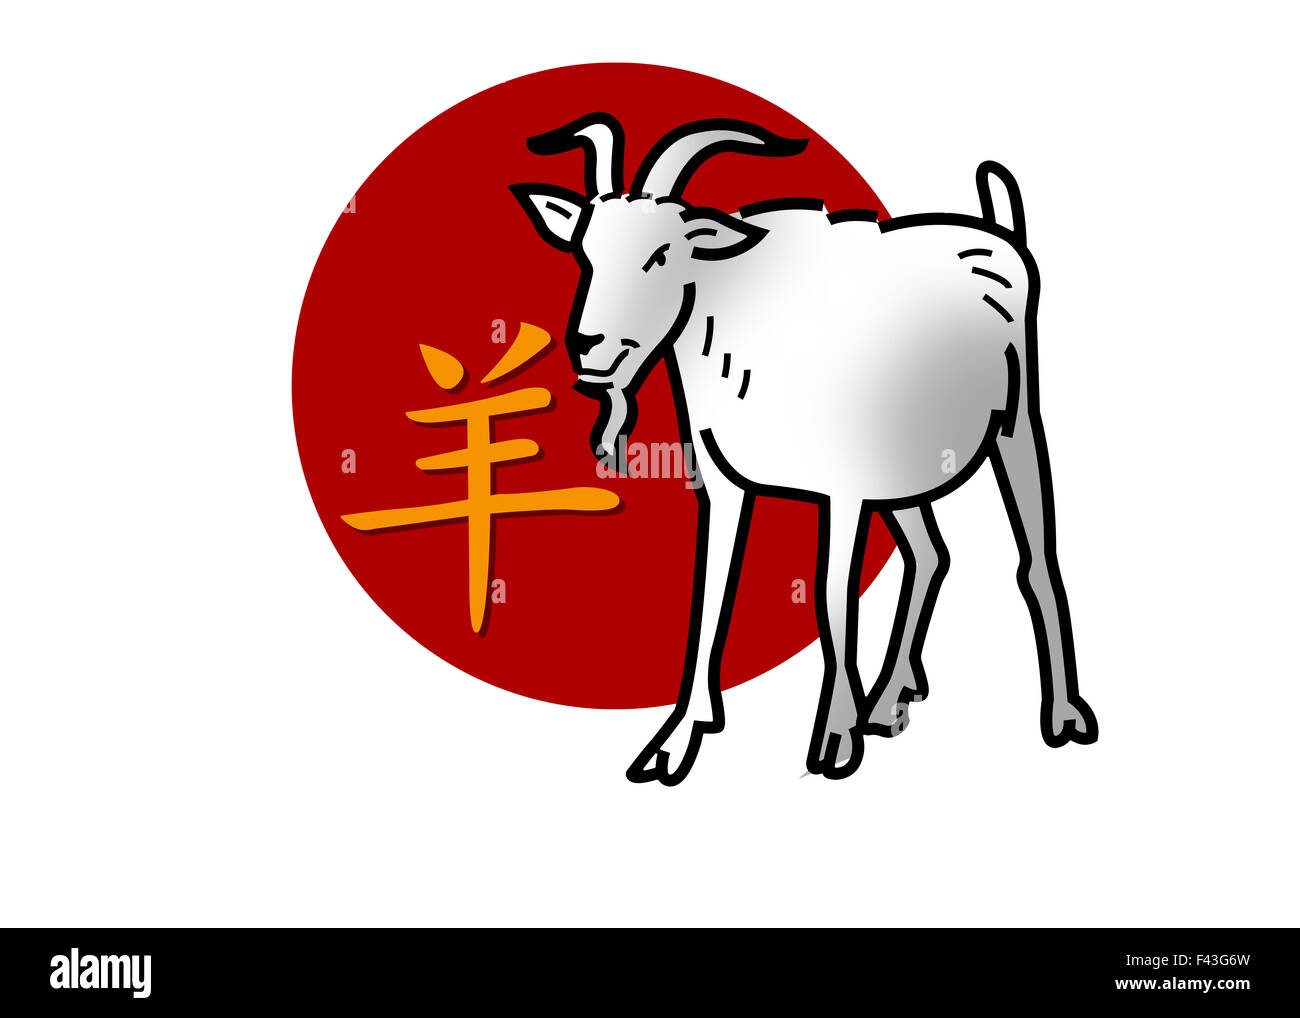 Chinese zodiac sign for year of the goat - Stock Image